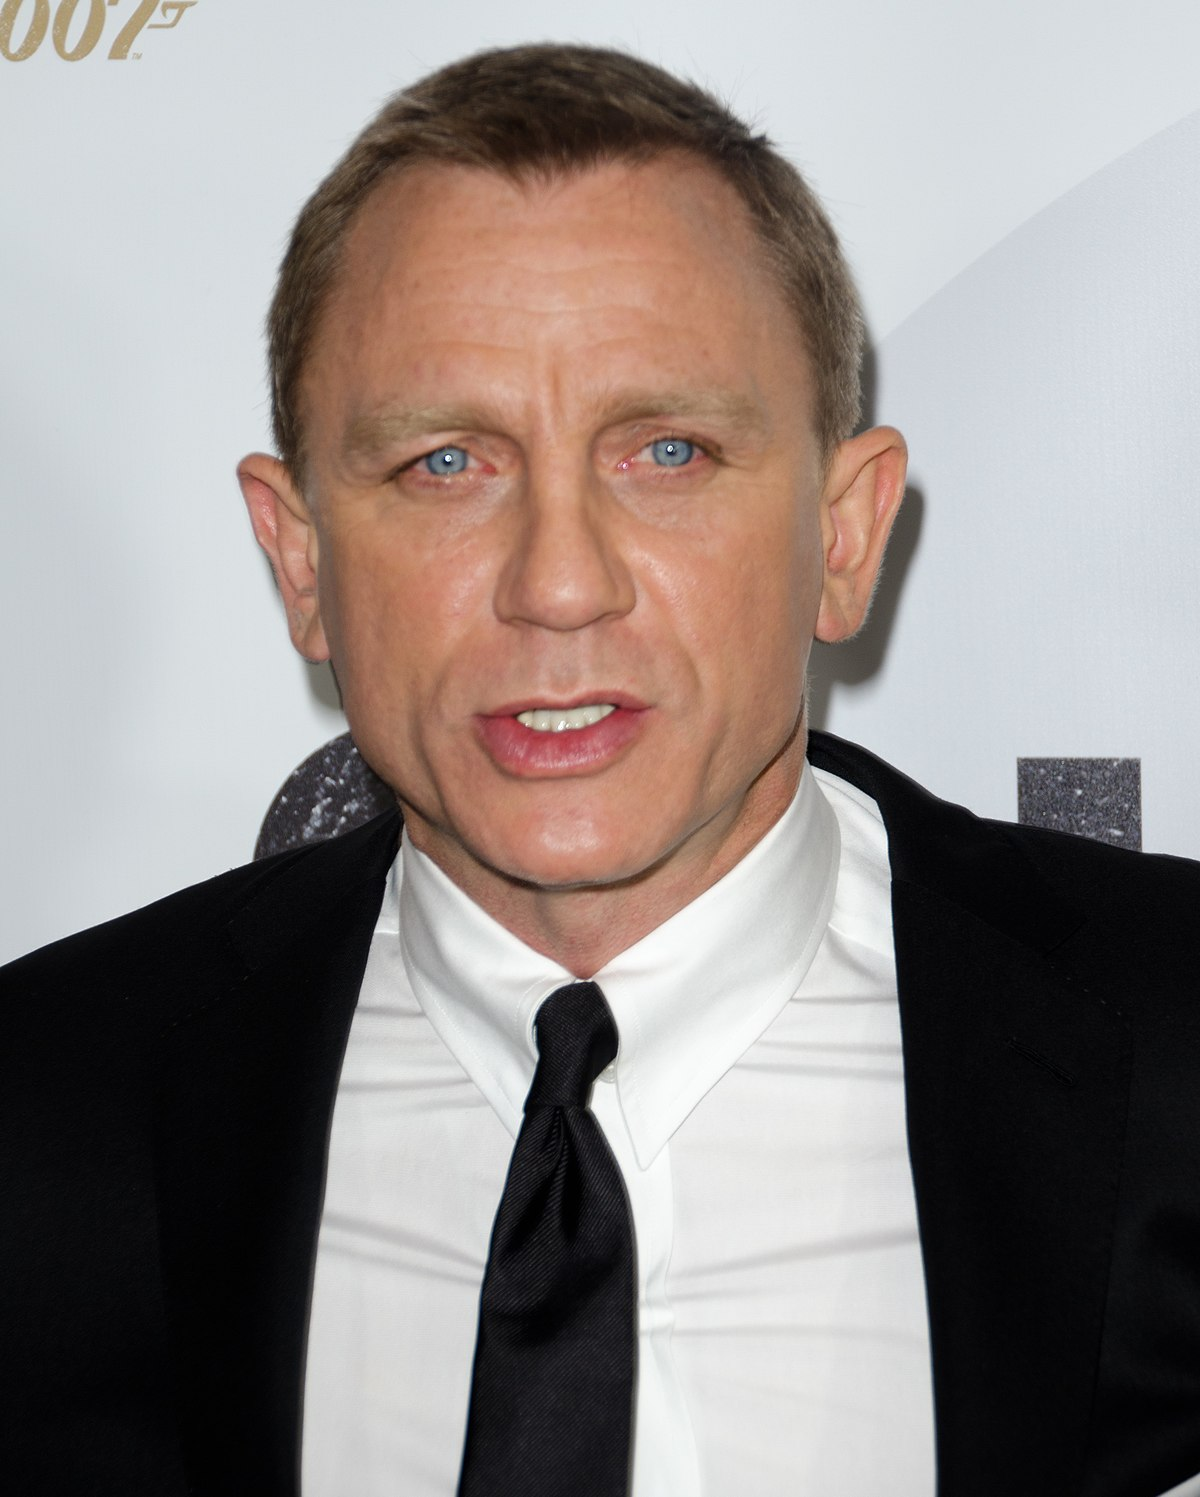 James Bond 007: Skyfall – Wikipedia Daniel Craig